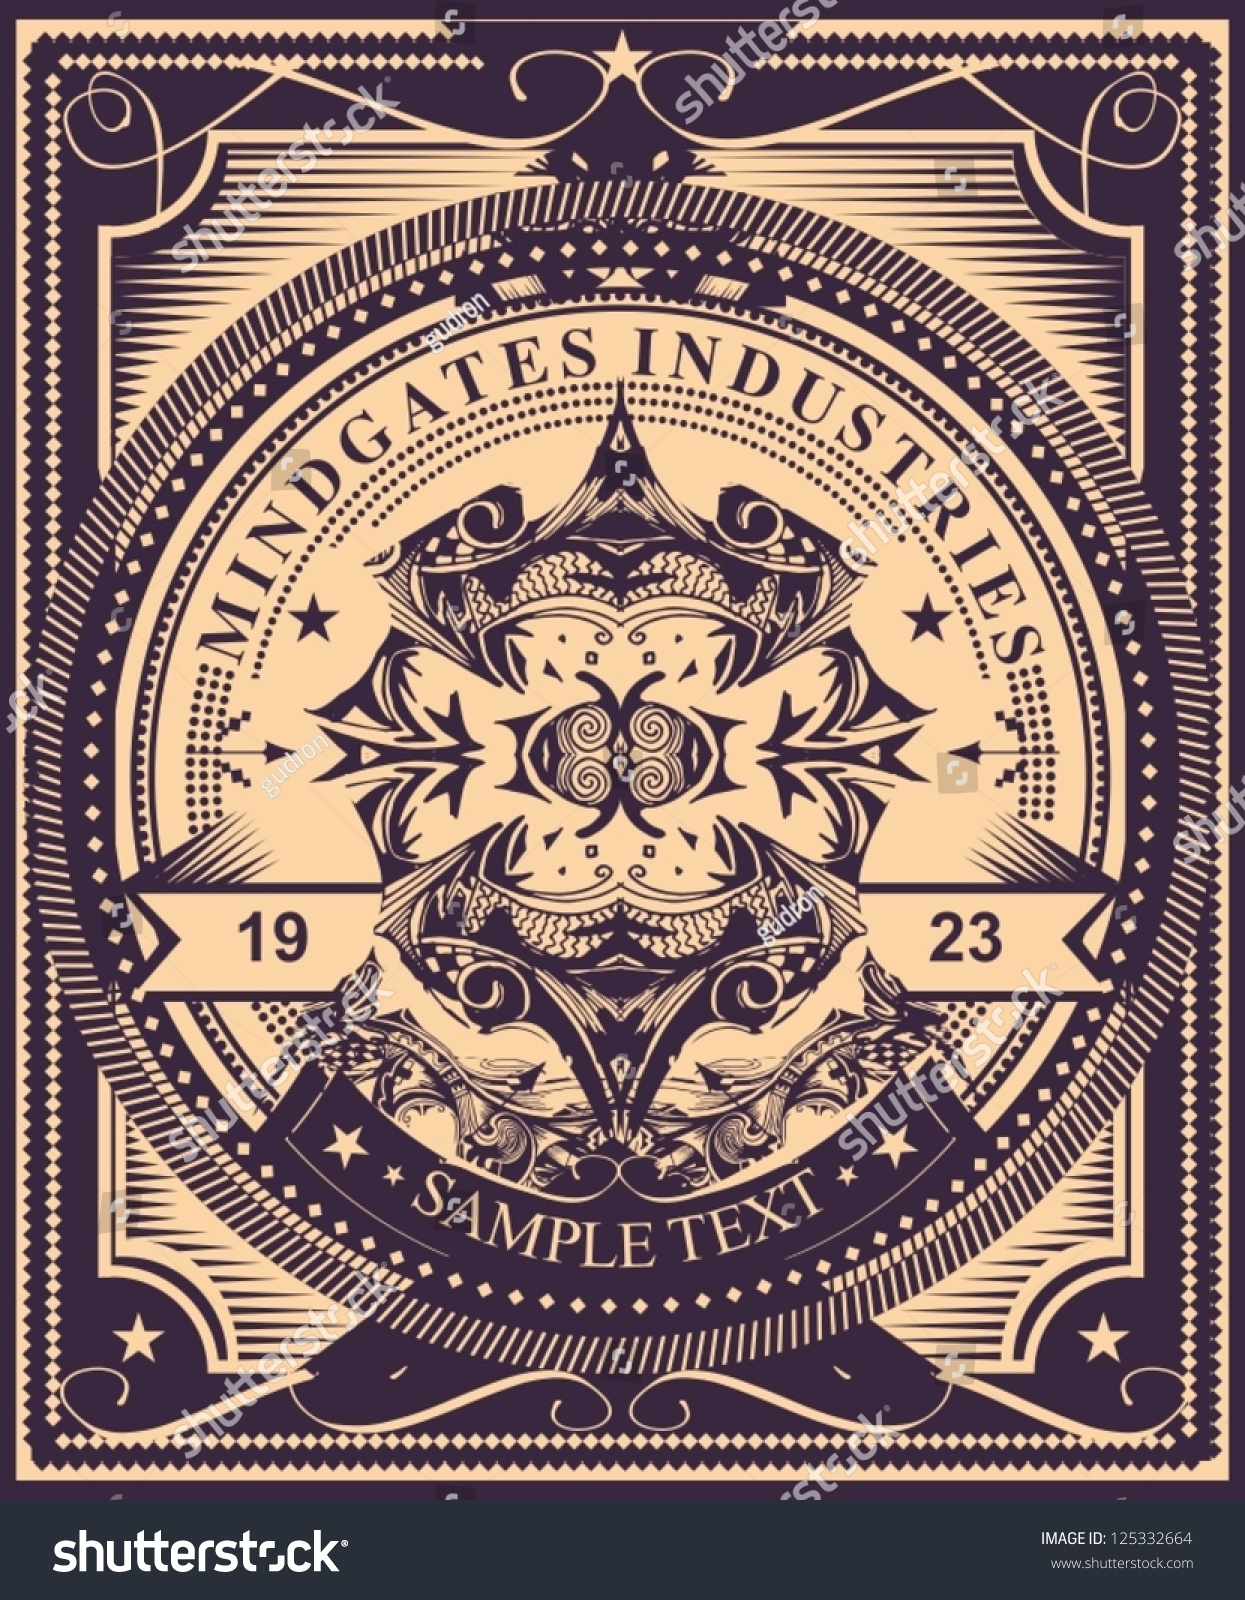 Poster design your own - Luxurious And Detailed Vintage Label Style Poster Design Highly Detailed Original Vector Artwork Just